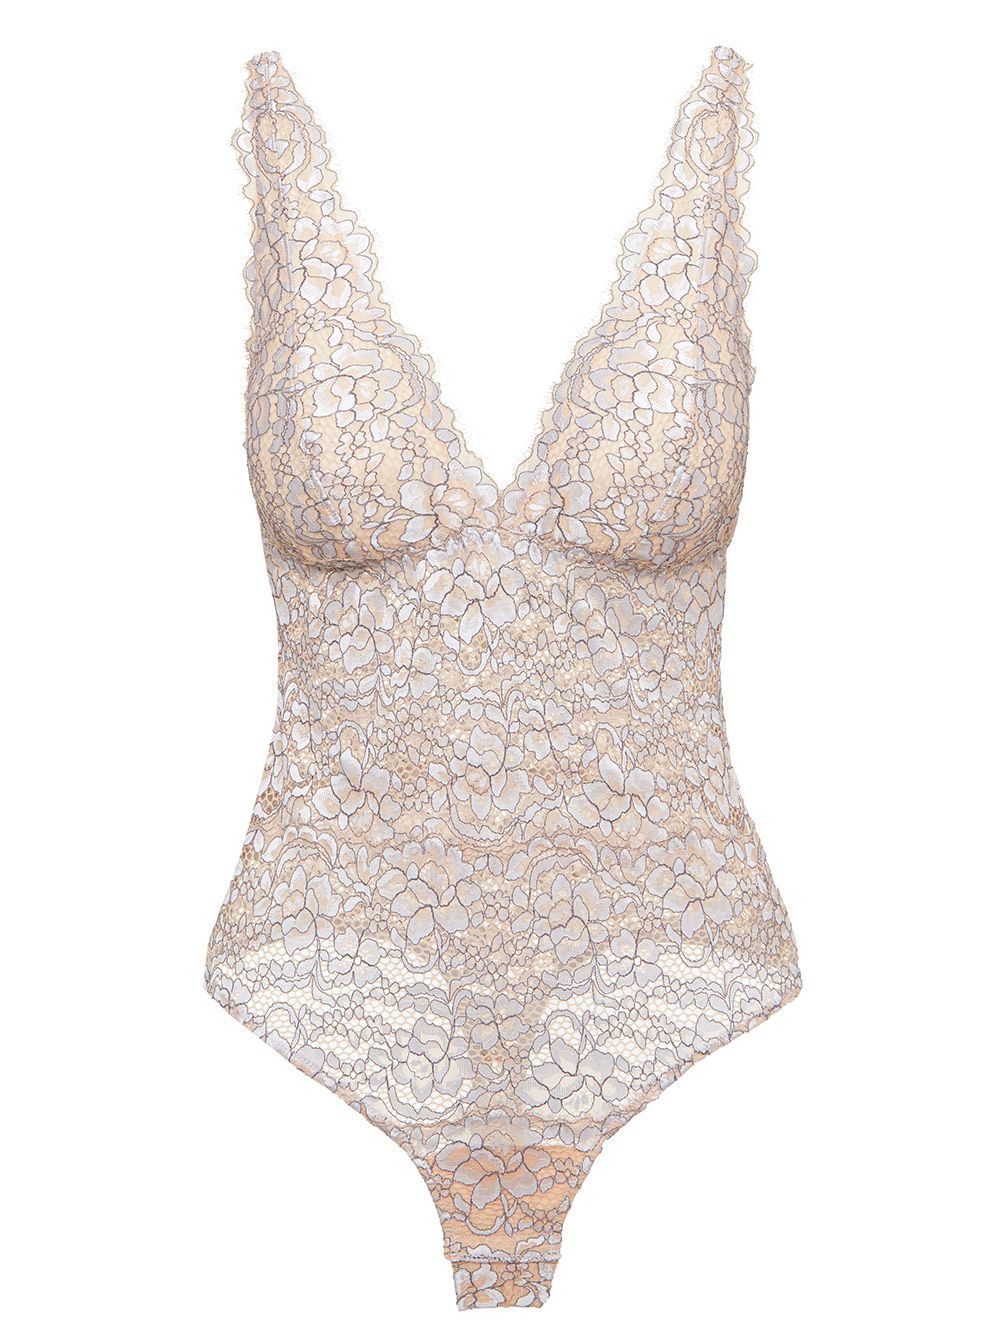 Recycled nylon bustier bodysuit beige color thong cut swimsuit in econyl regenerated nylon